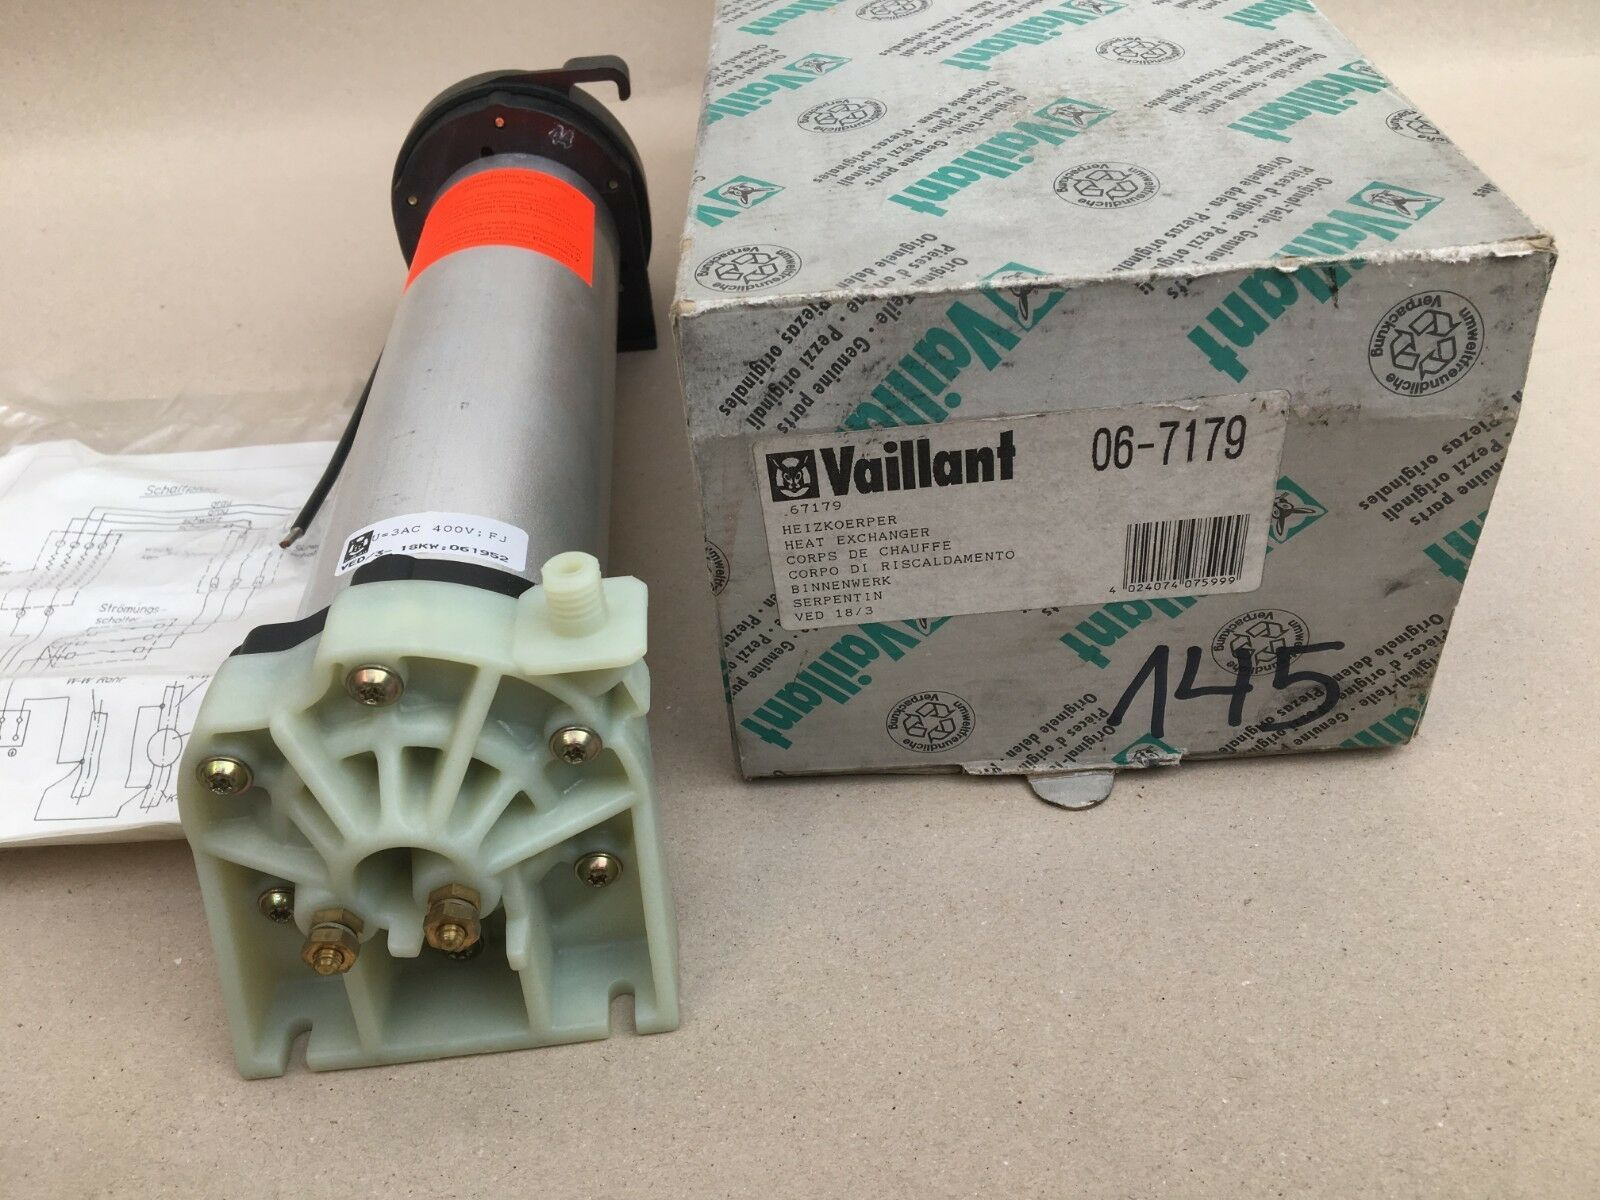 Vaillant Heizkörper 0671-79   18kw 18kw 18kw  Nr. 145 8a5261